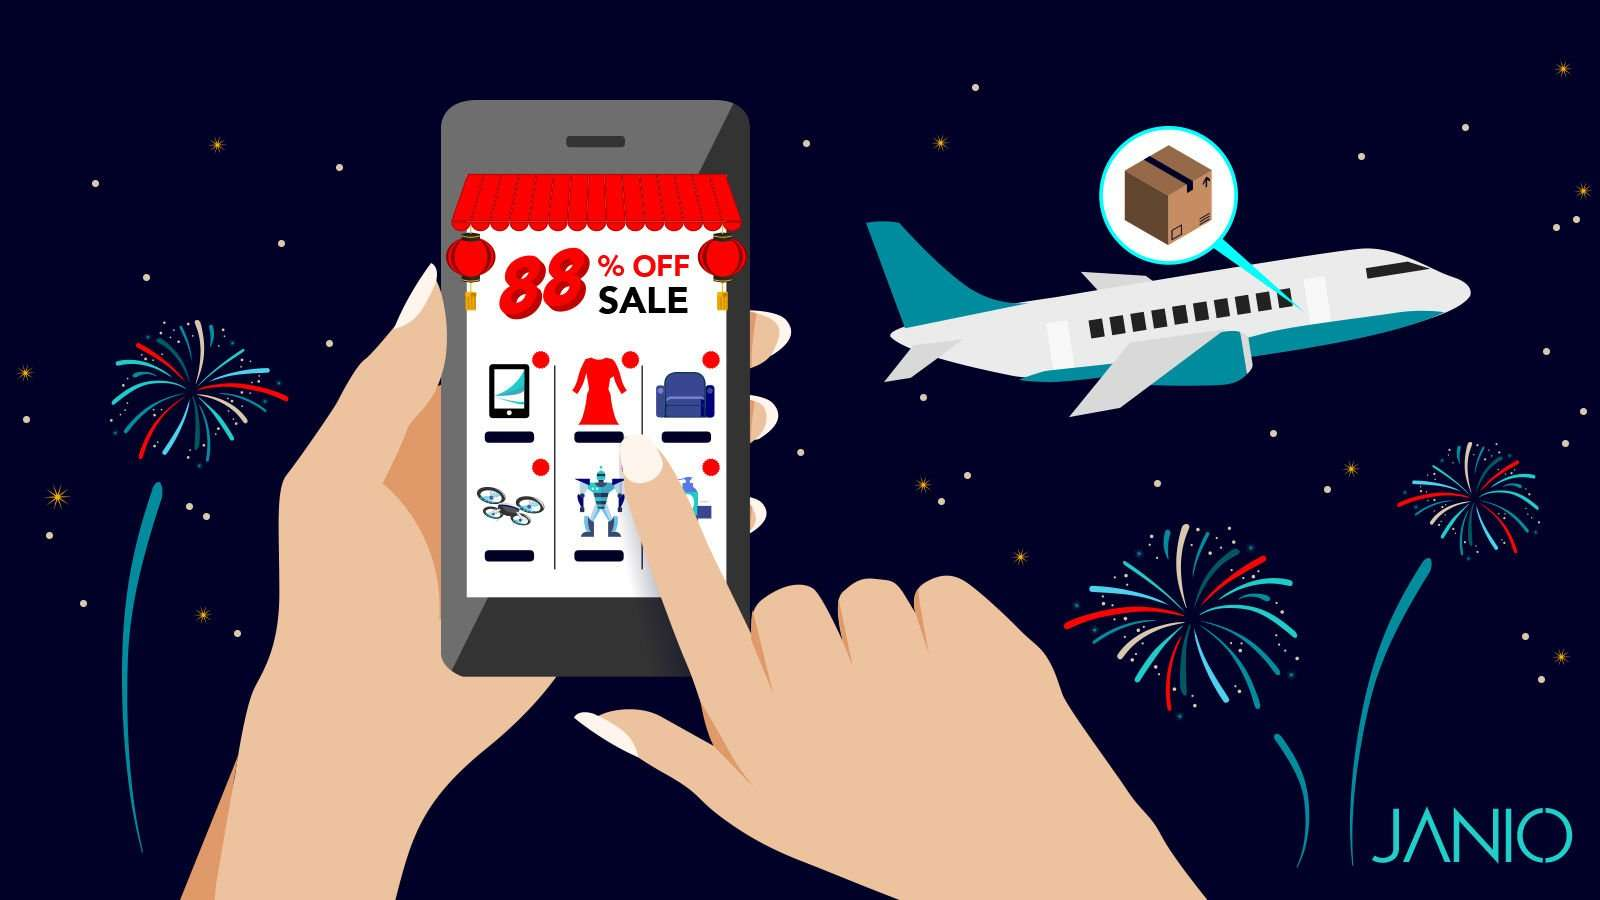 How to prepare your eCommerce shipments for Lunar New Year